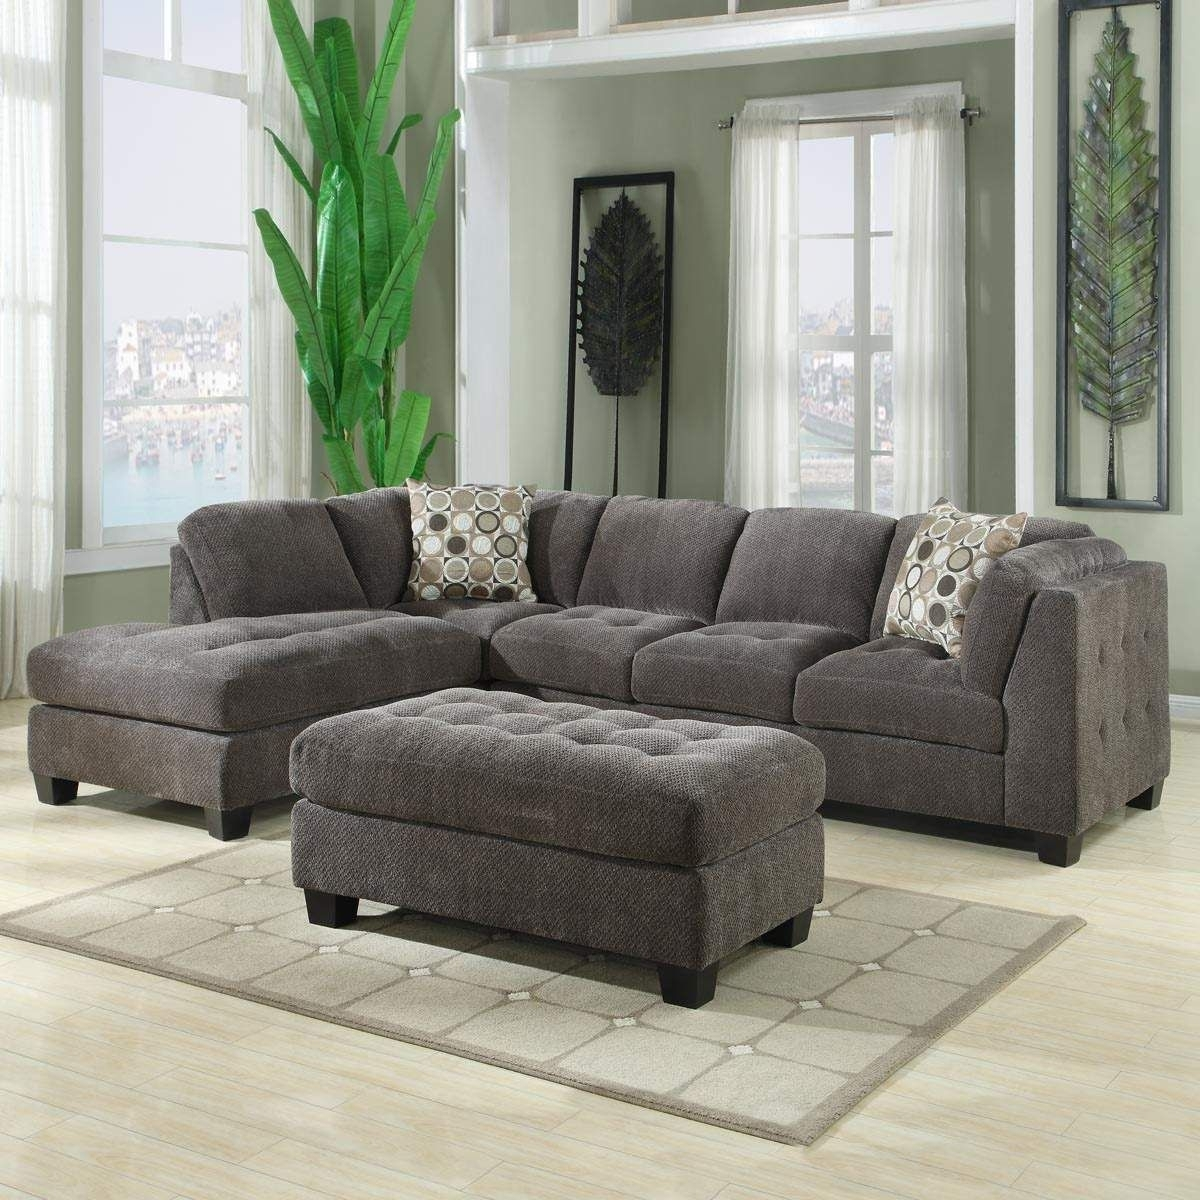 Norfolk Grey 3 Piece Sectional W/laf Chaise For Norfolk Grey 3 Piece Sectionals With Laf Chaise (Image 17 of 25)